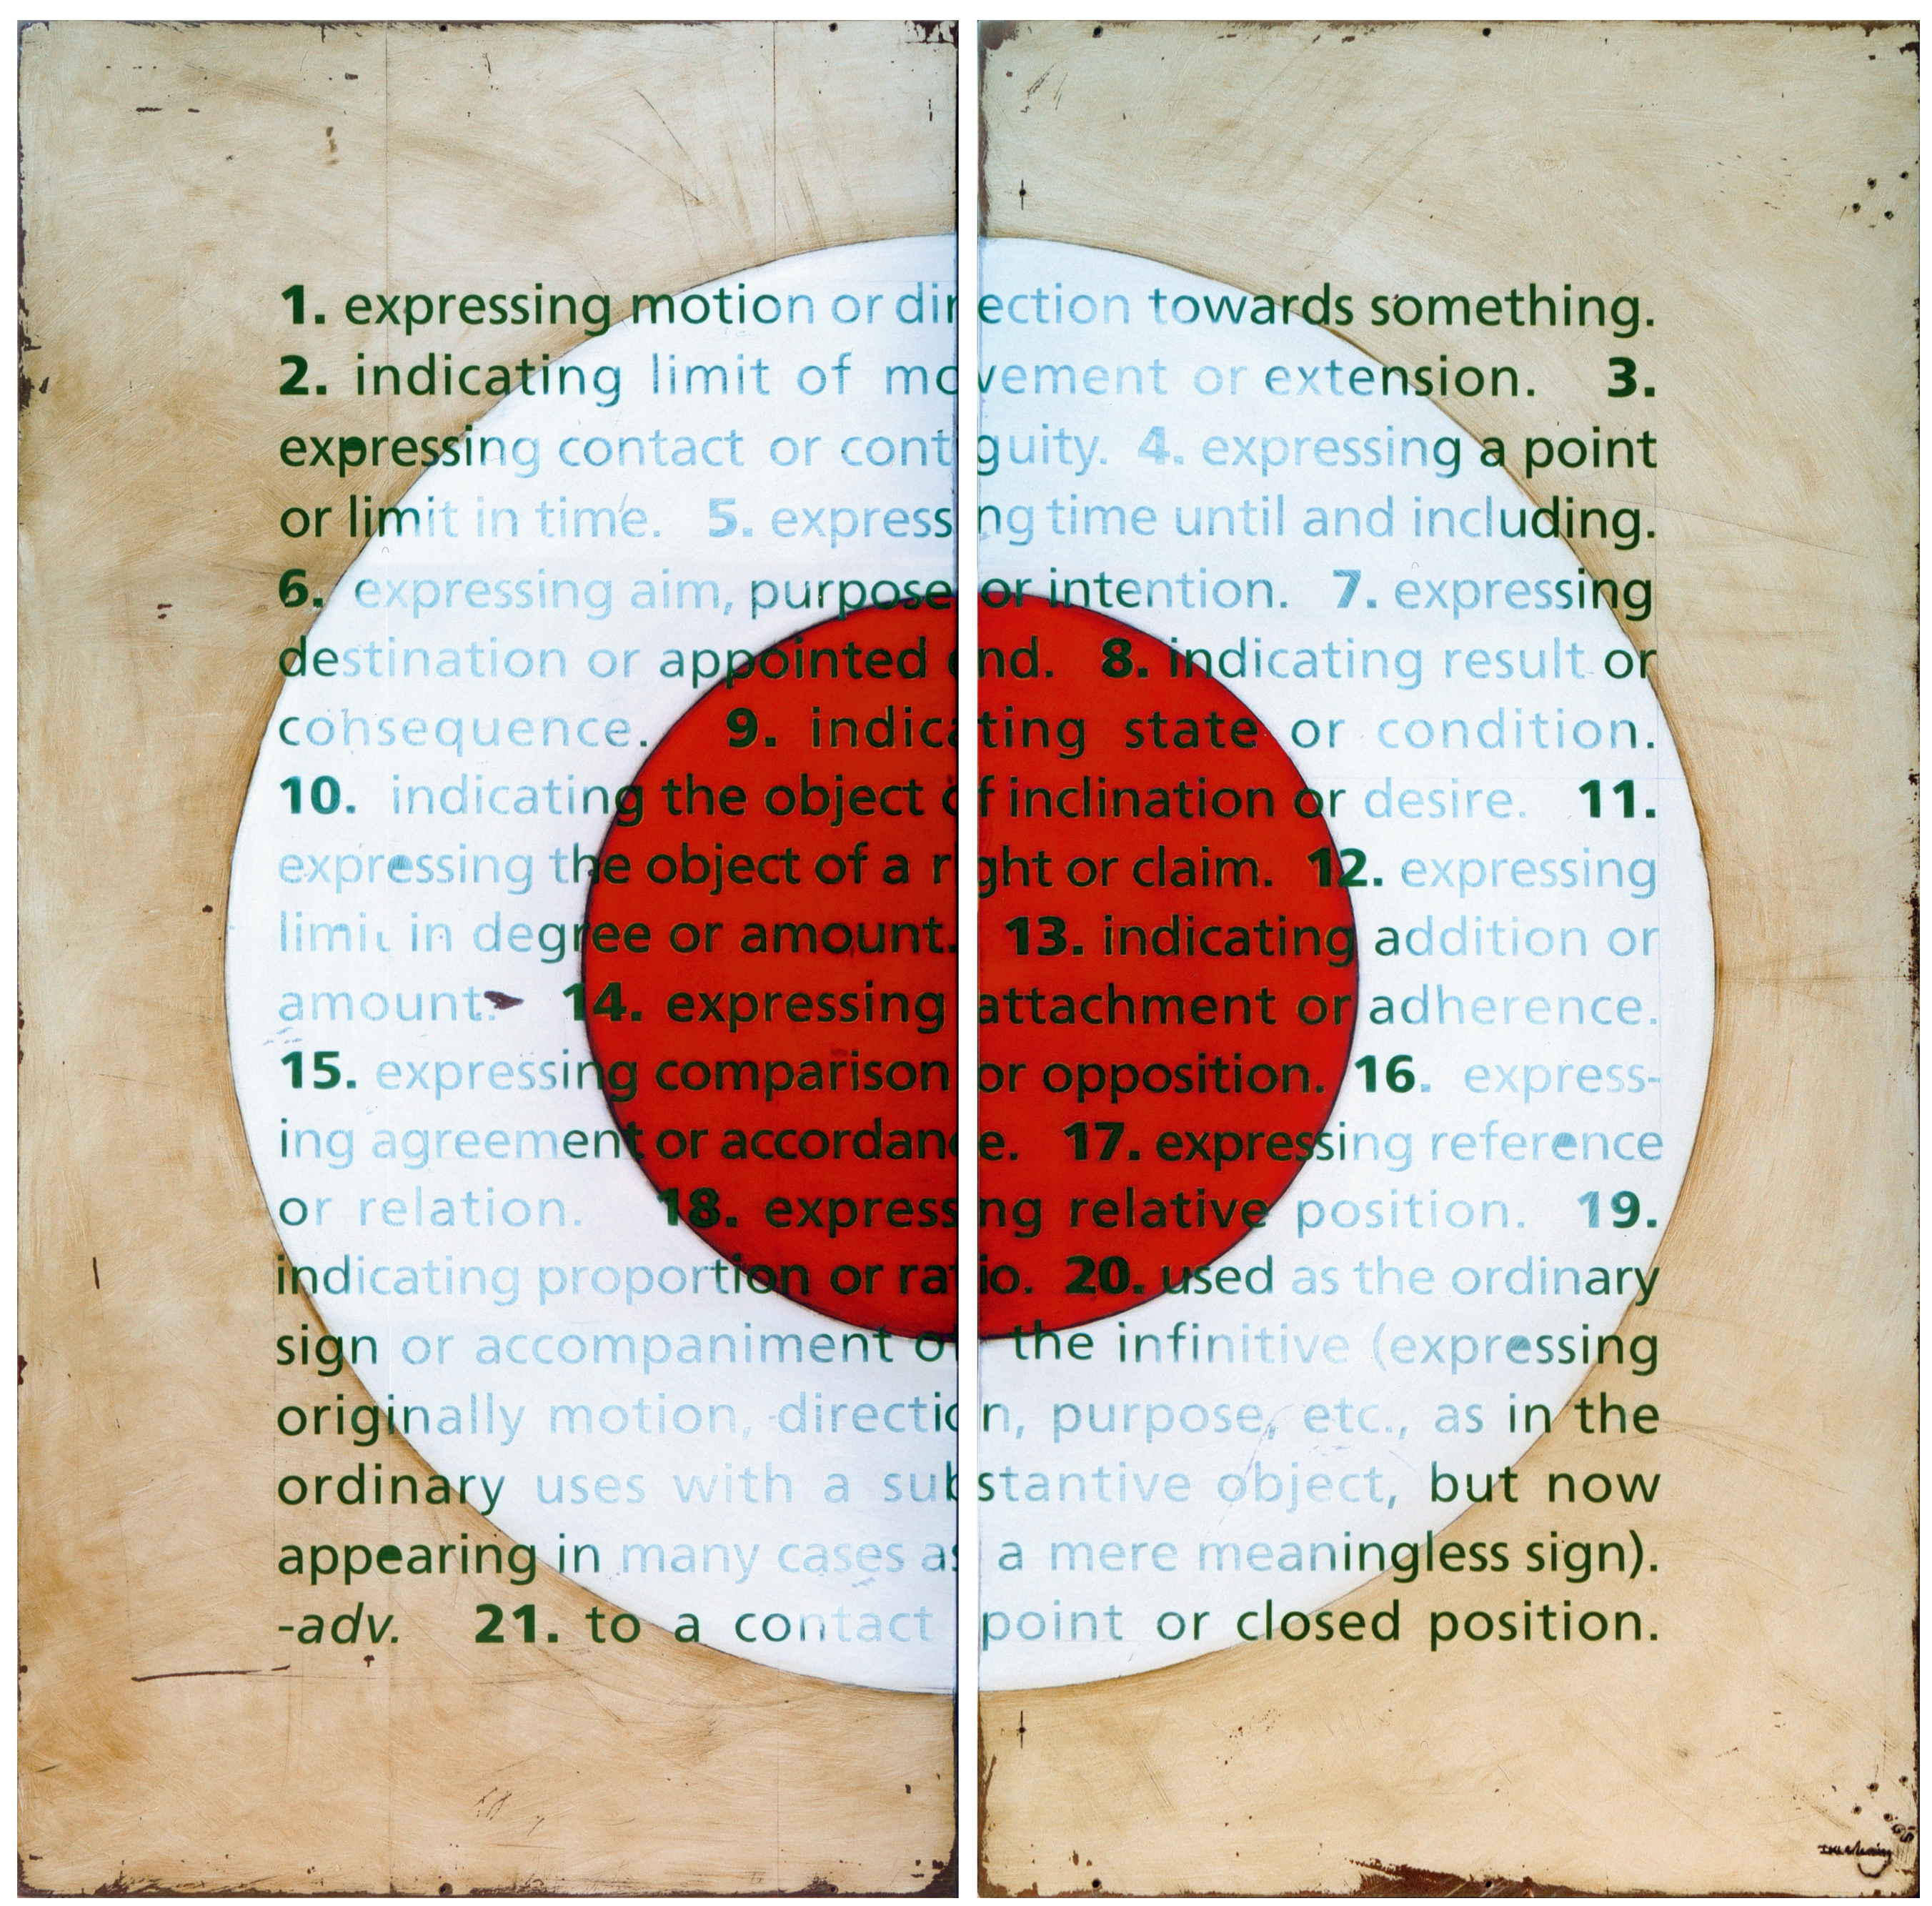 Dictionary definition of the word 'to' painted in a square grid over a red a white circle